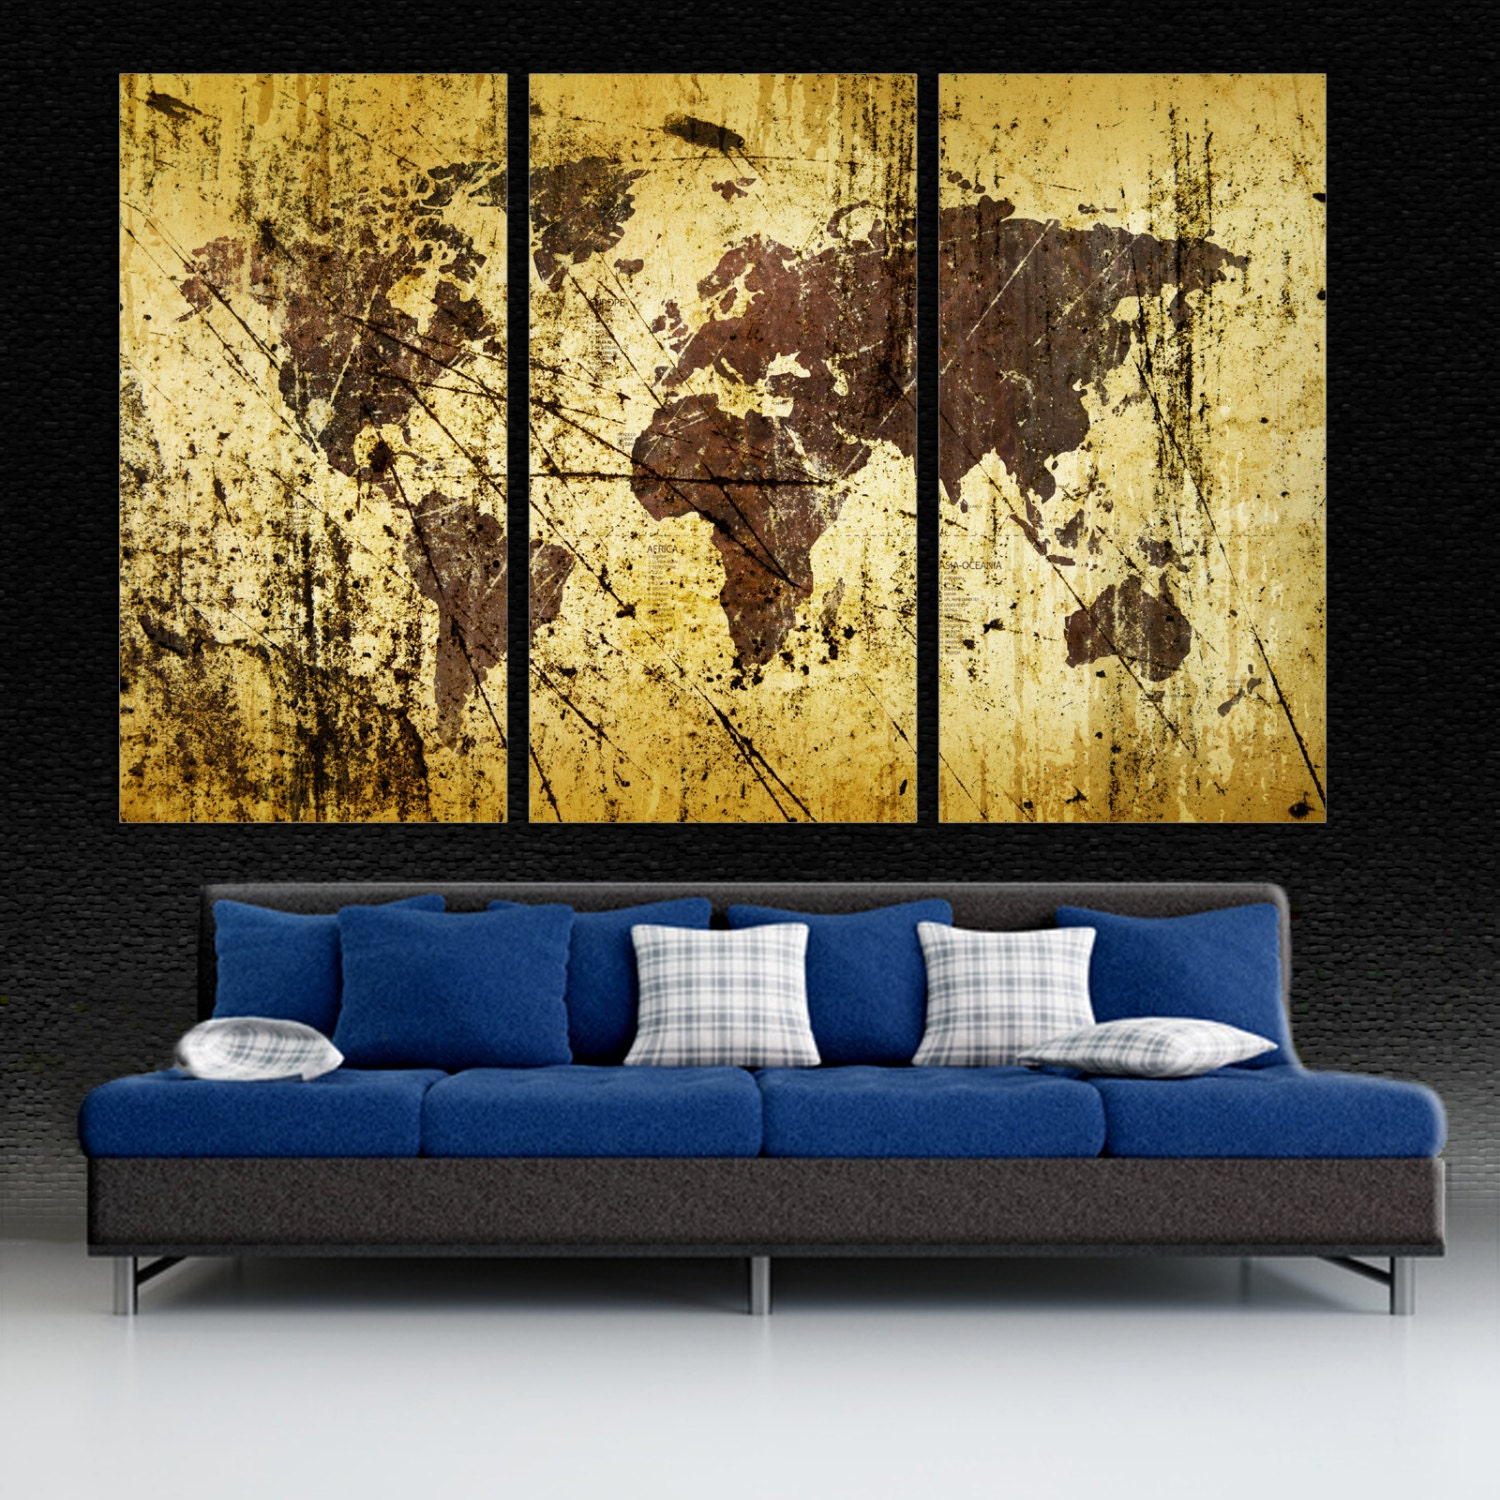 Abstract Buff Kobicha World Map Canvas Print wall art 3 Panel